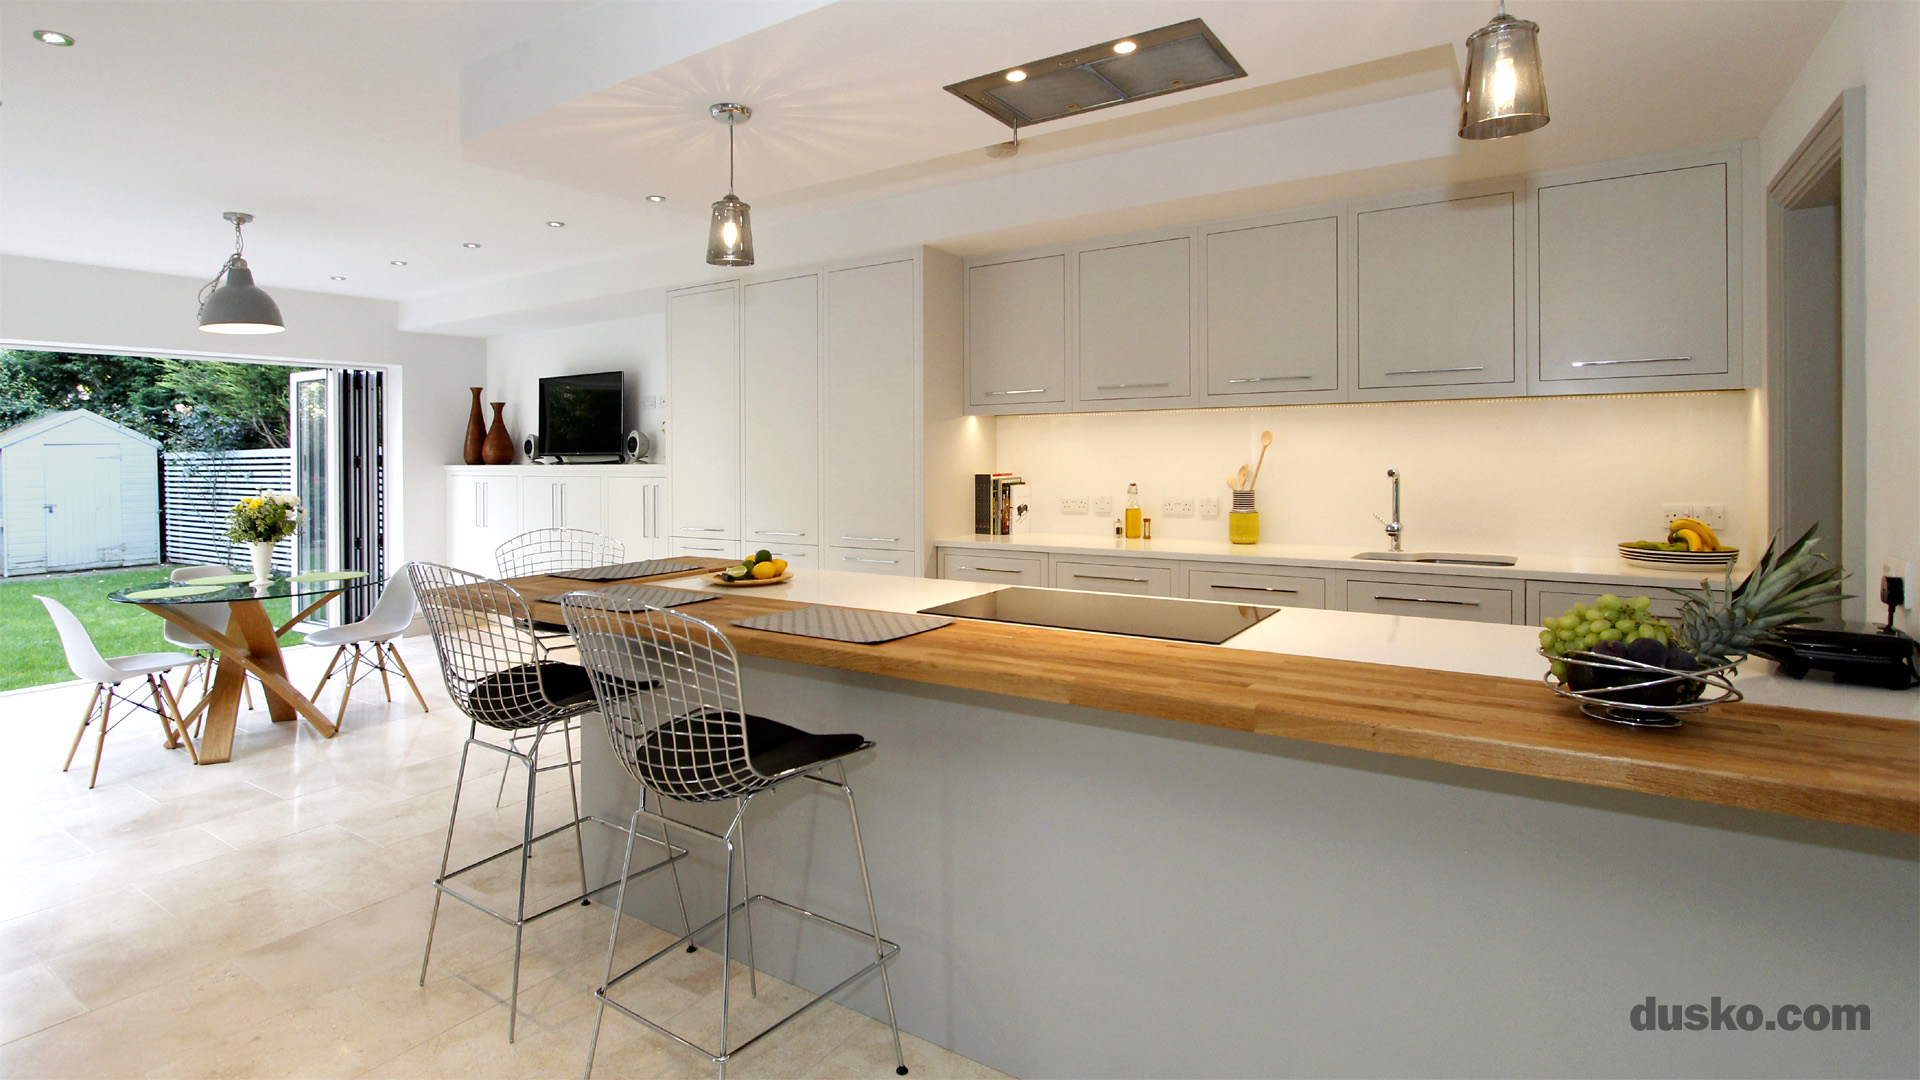 Contemporary Open Plan Kitchen and Dining Area in Handforth  Cheshire Breakfast Bar dusko com